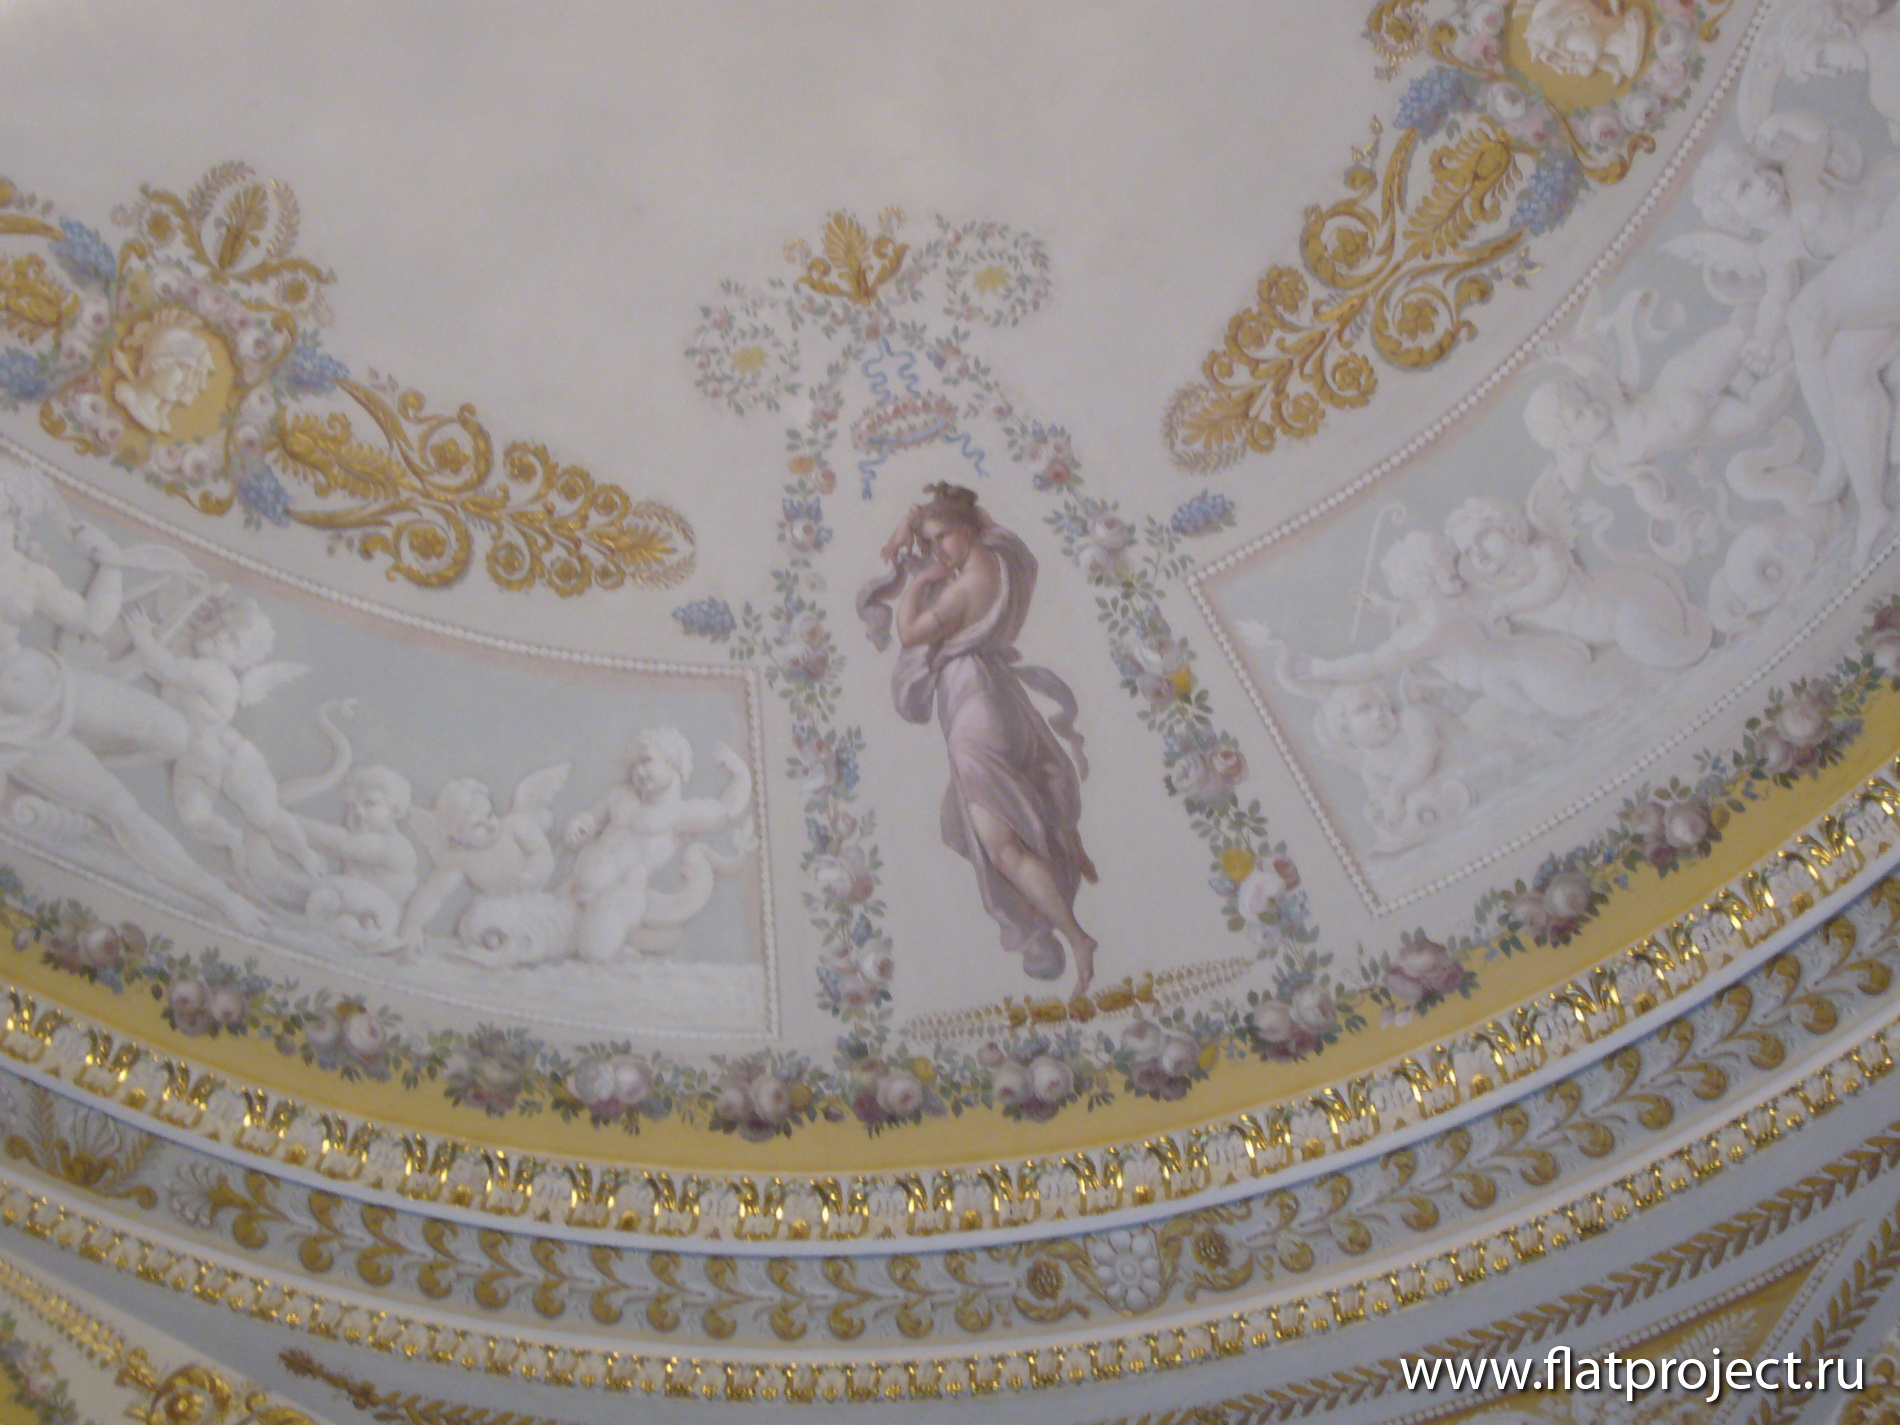 The State Russian museum interiors – photo 59